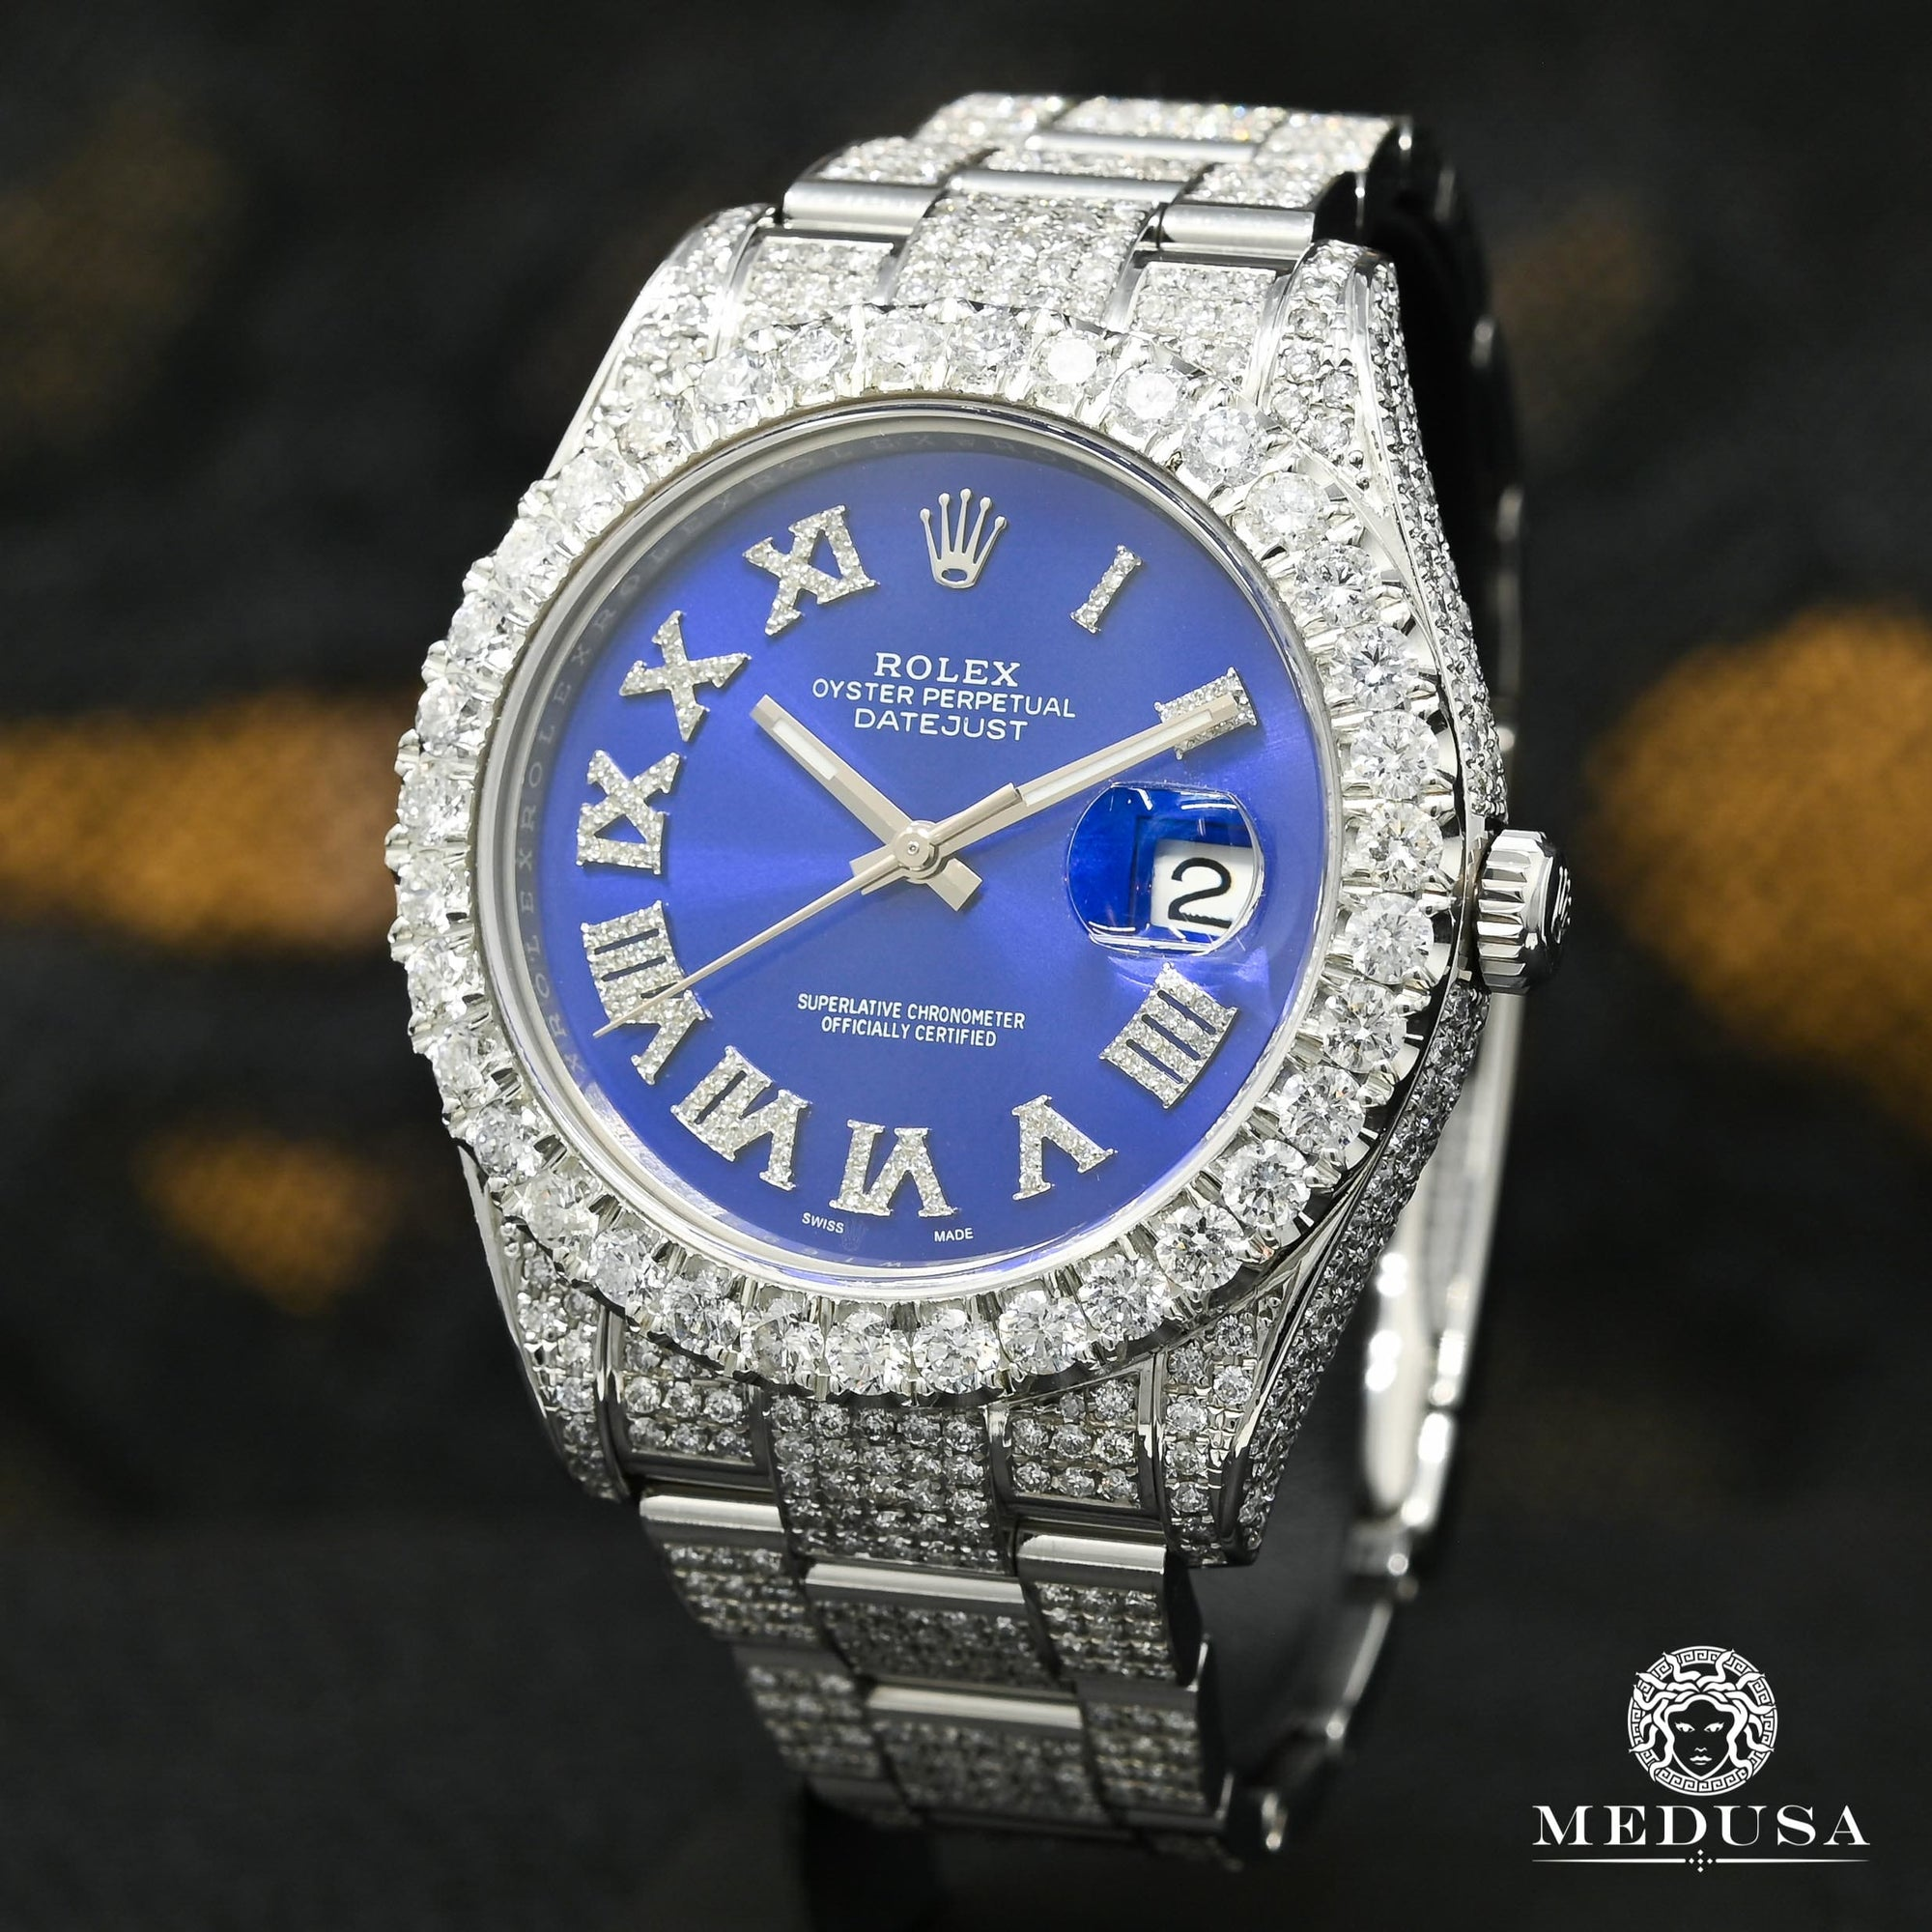 Rolex Datejust 41mm - Blue Romain Full Iced